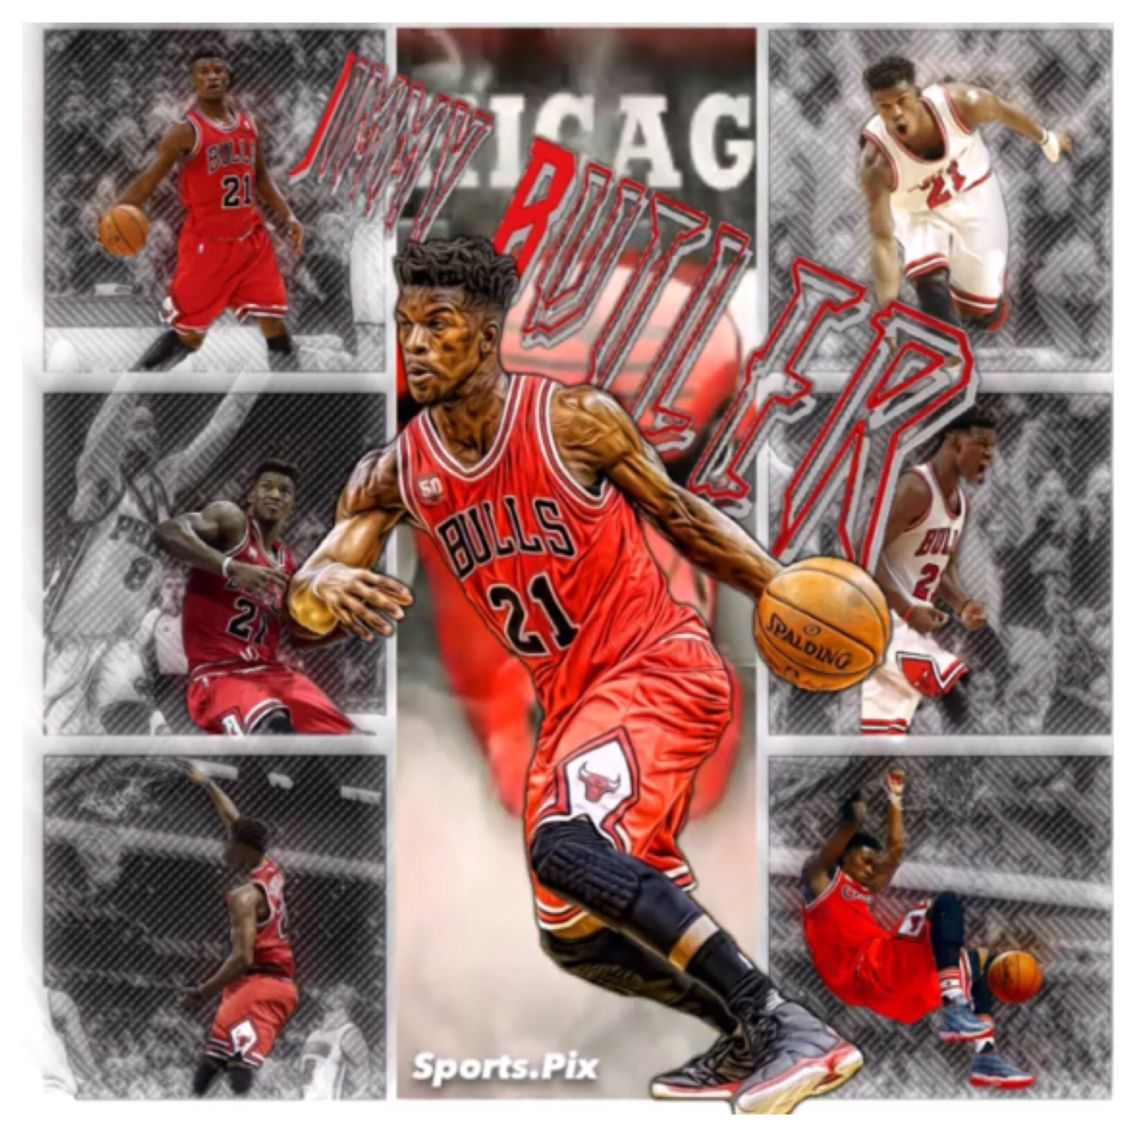 Jimmy Butler Game artwork, Video game covers, Video